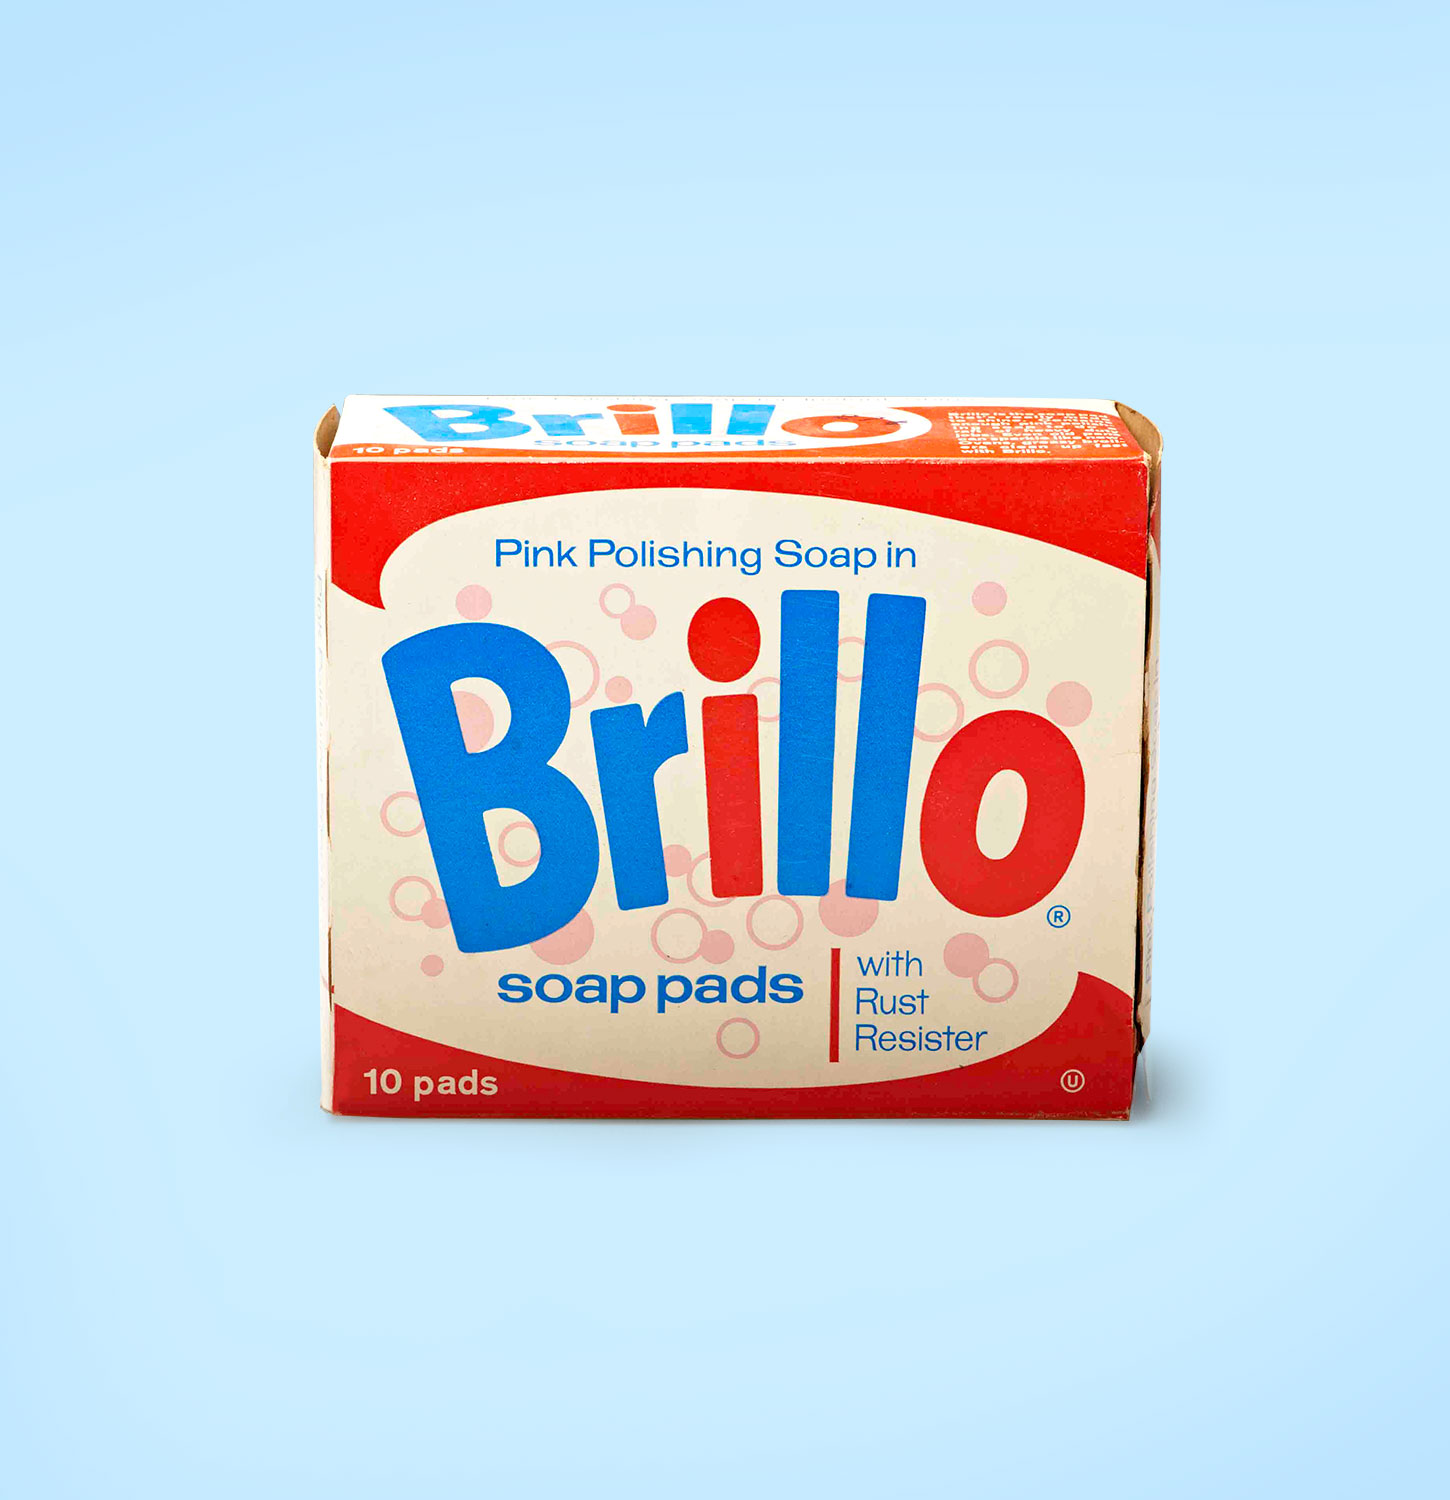 Old brillo soap pad package